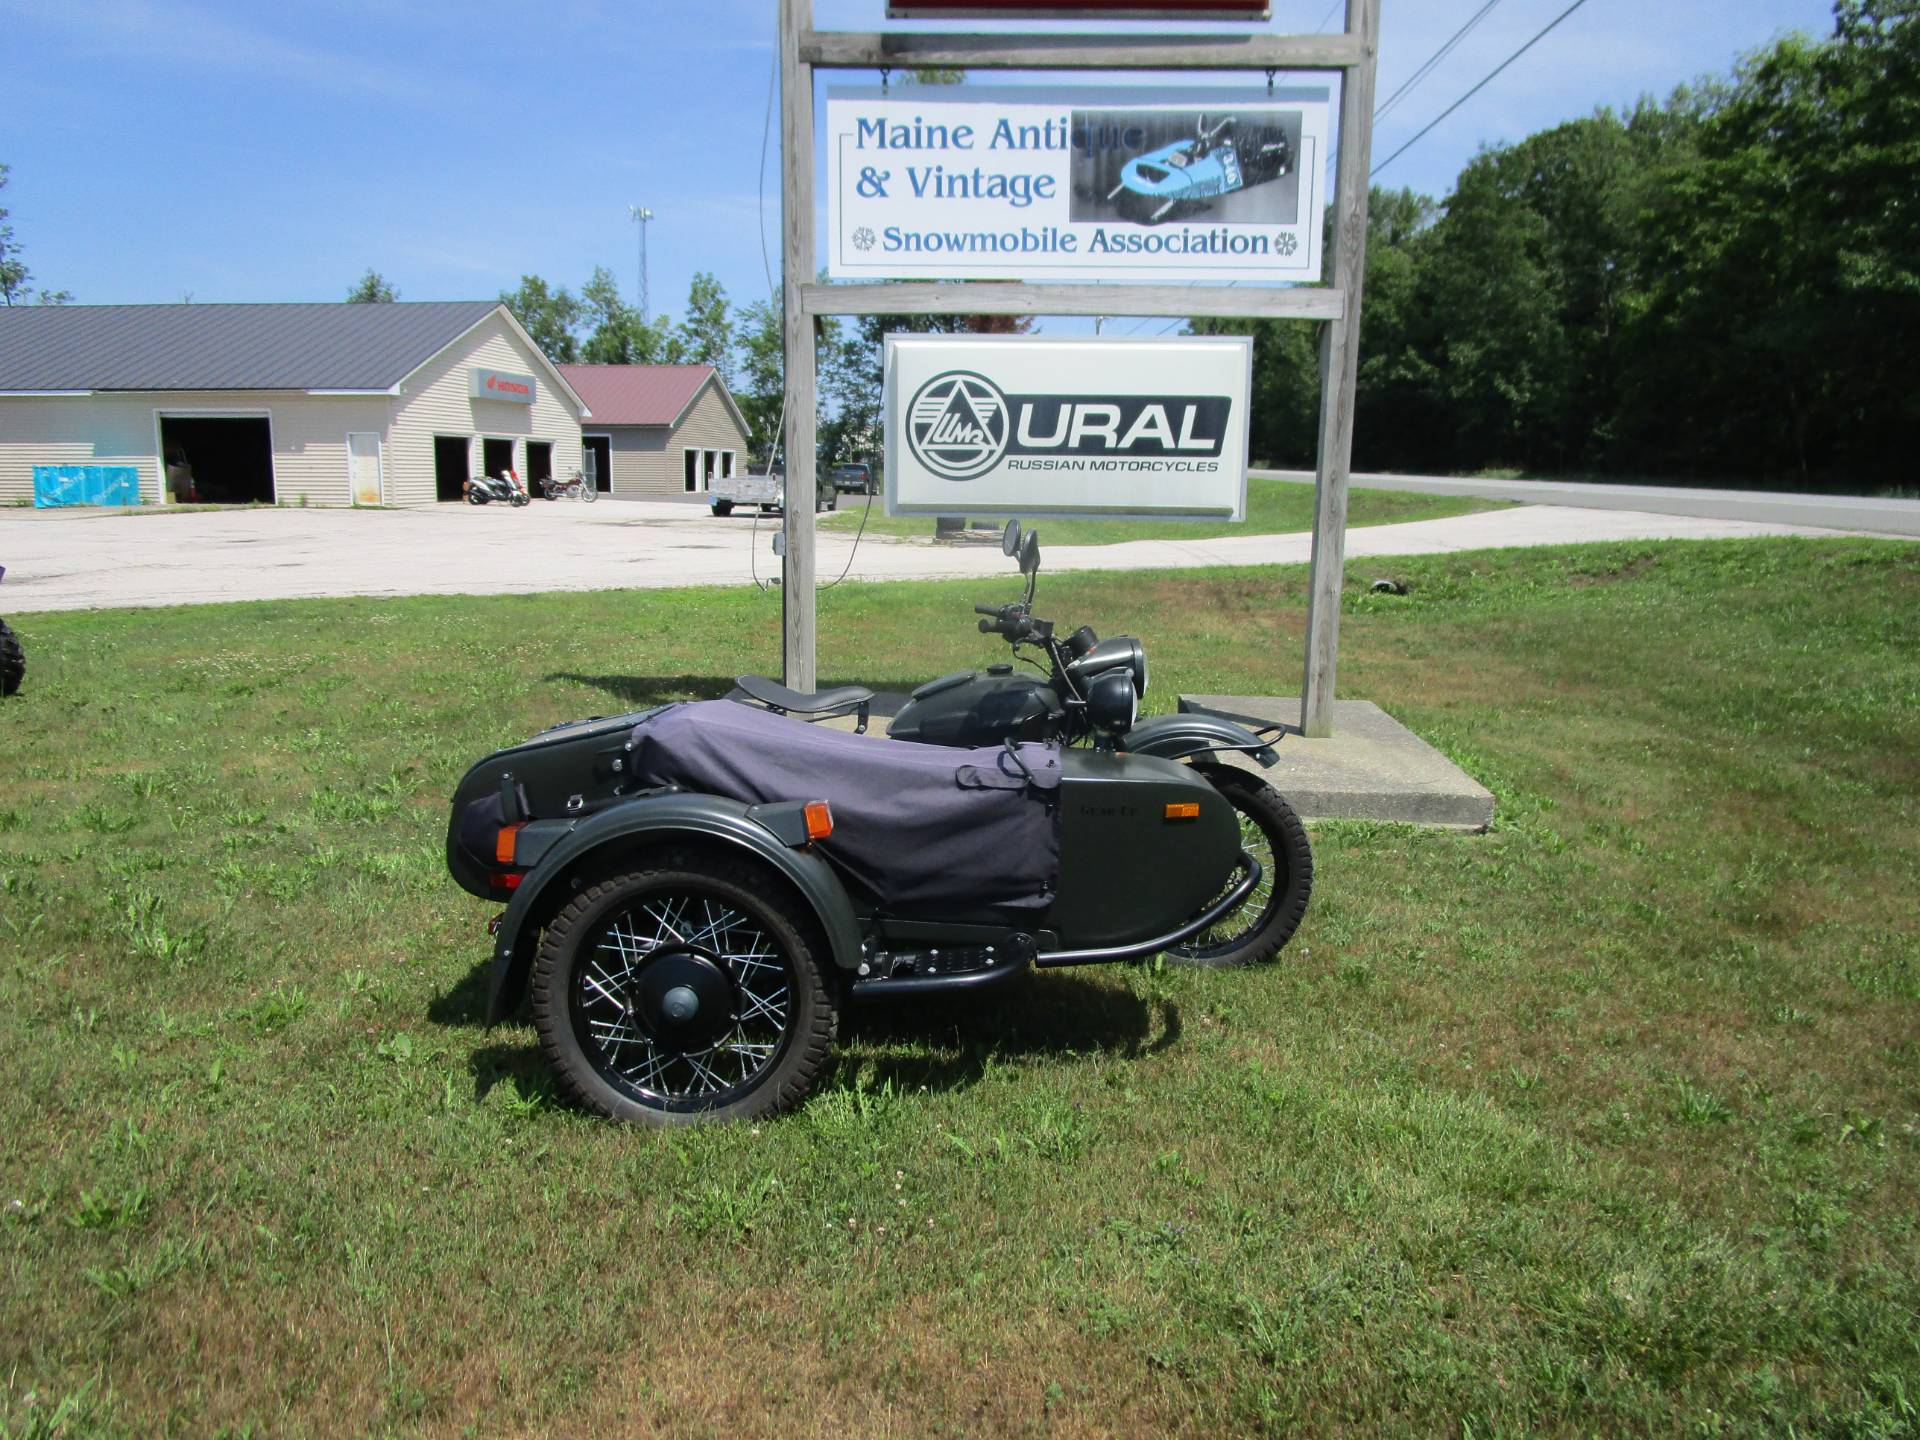 2013 Ural Motorcycles Gear Up in Newport, Maine - Photo 1